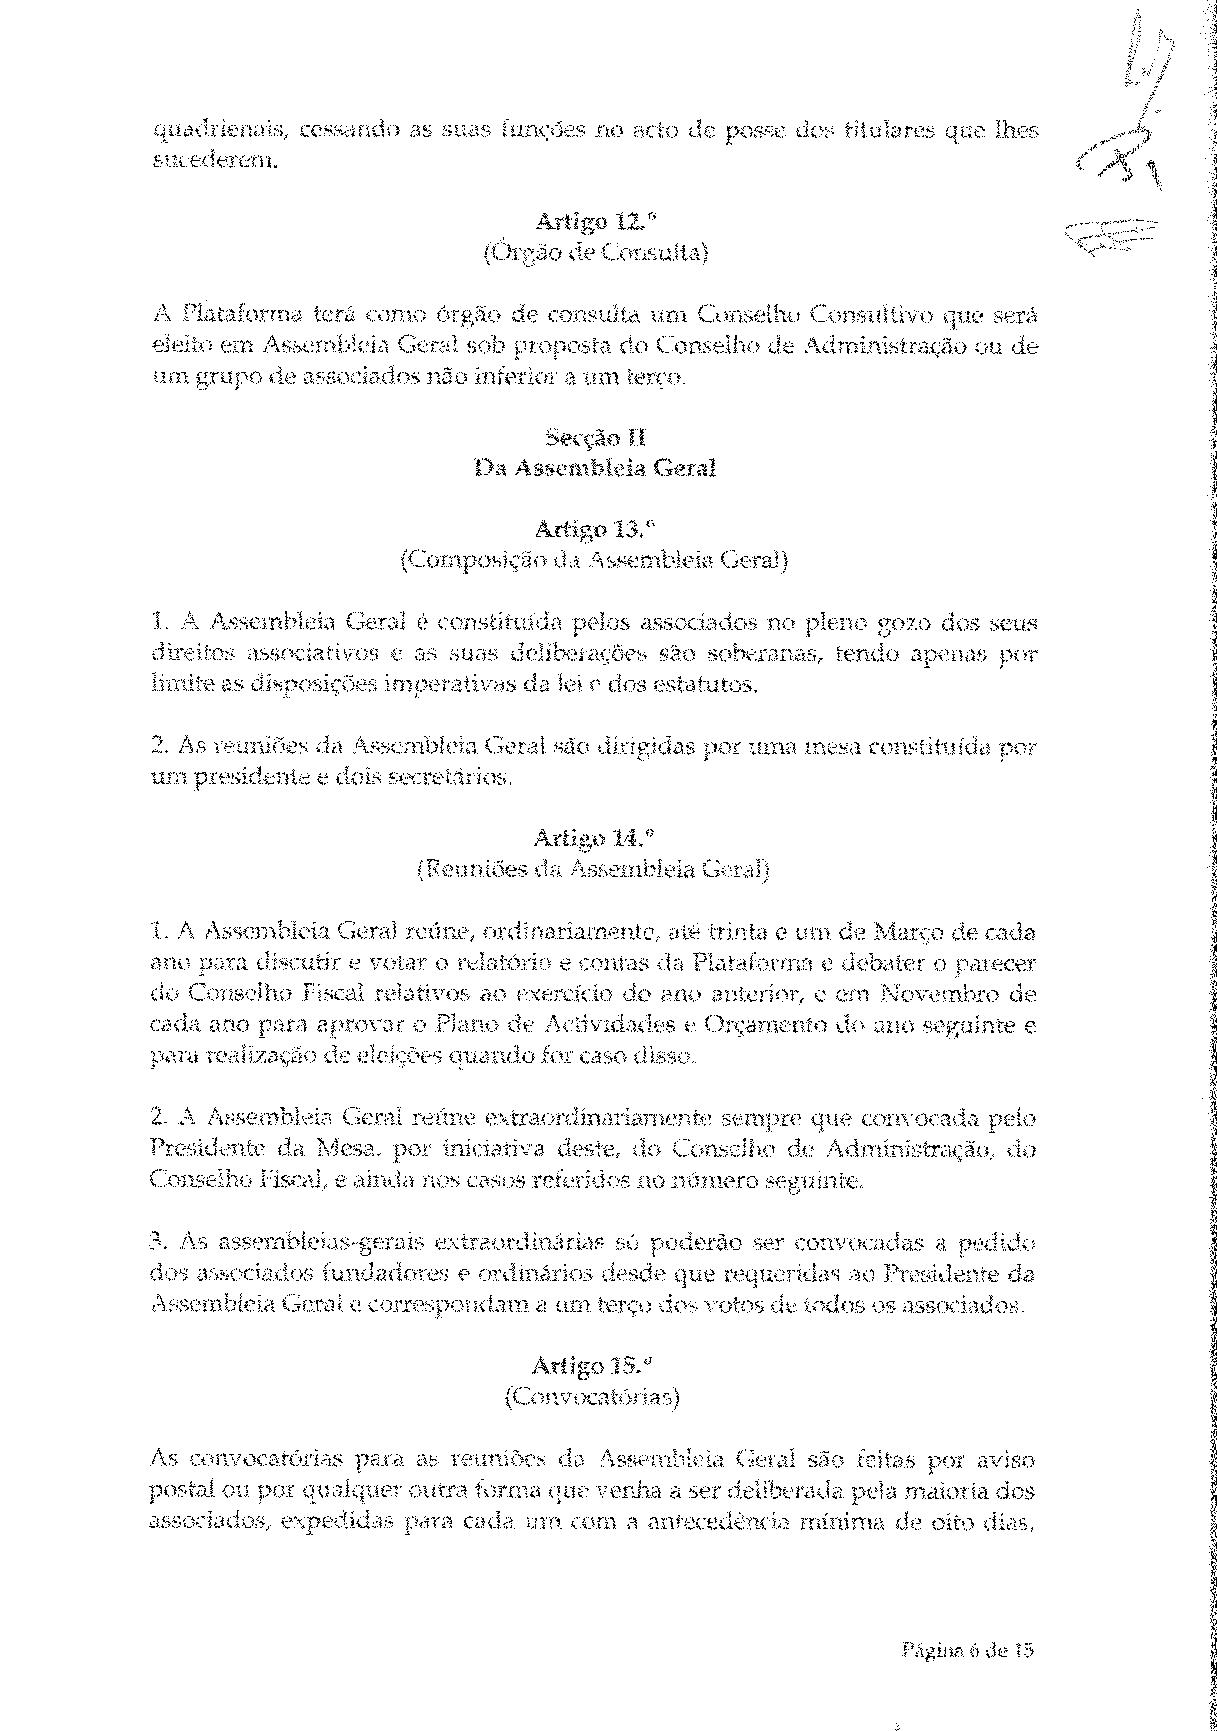 509402267_Associacao_BLC_rectificacao (5)-page-012